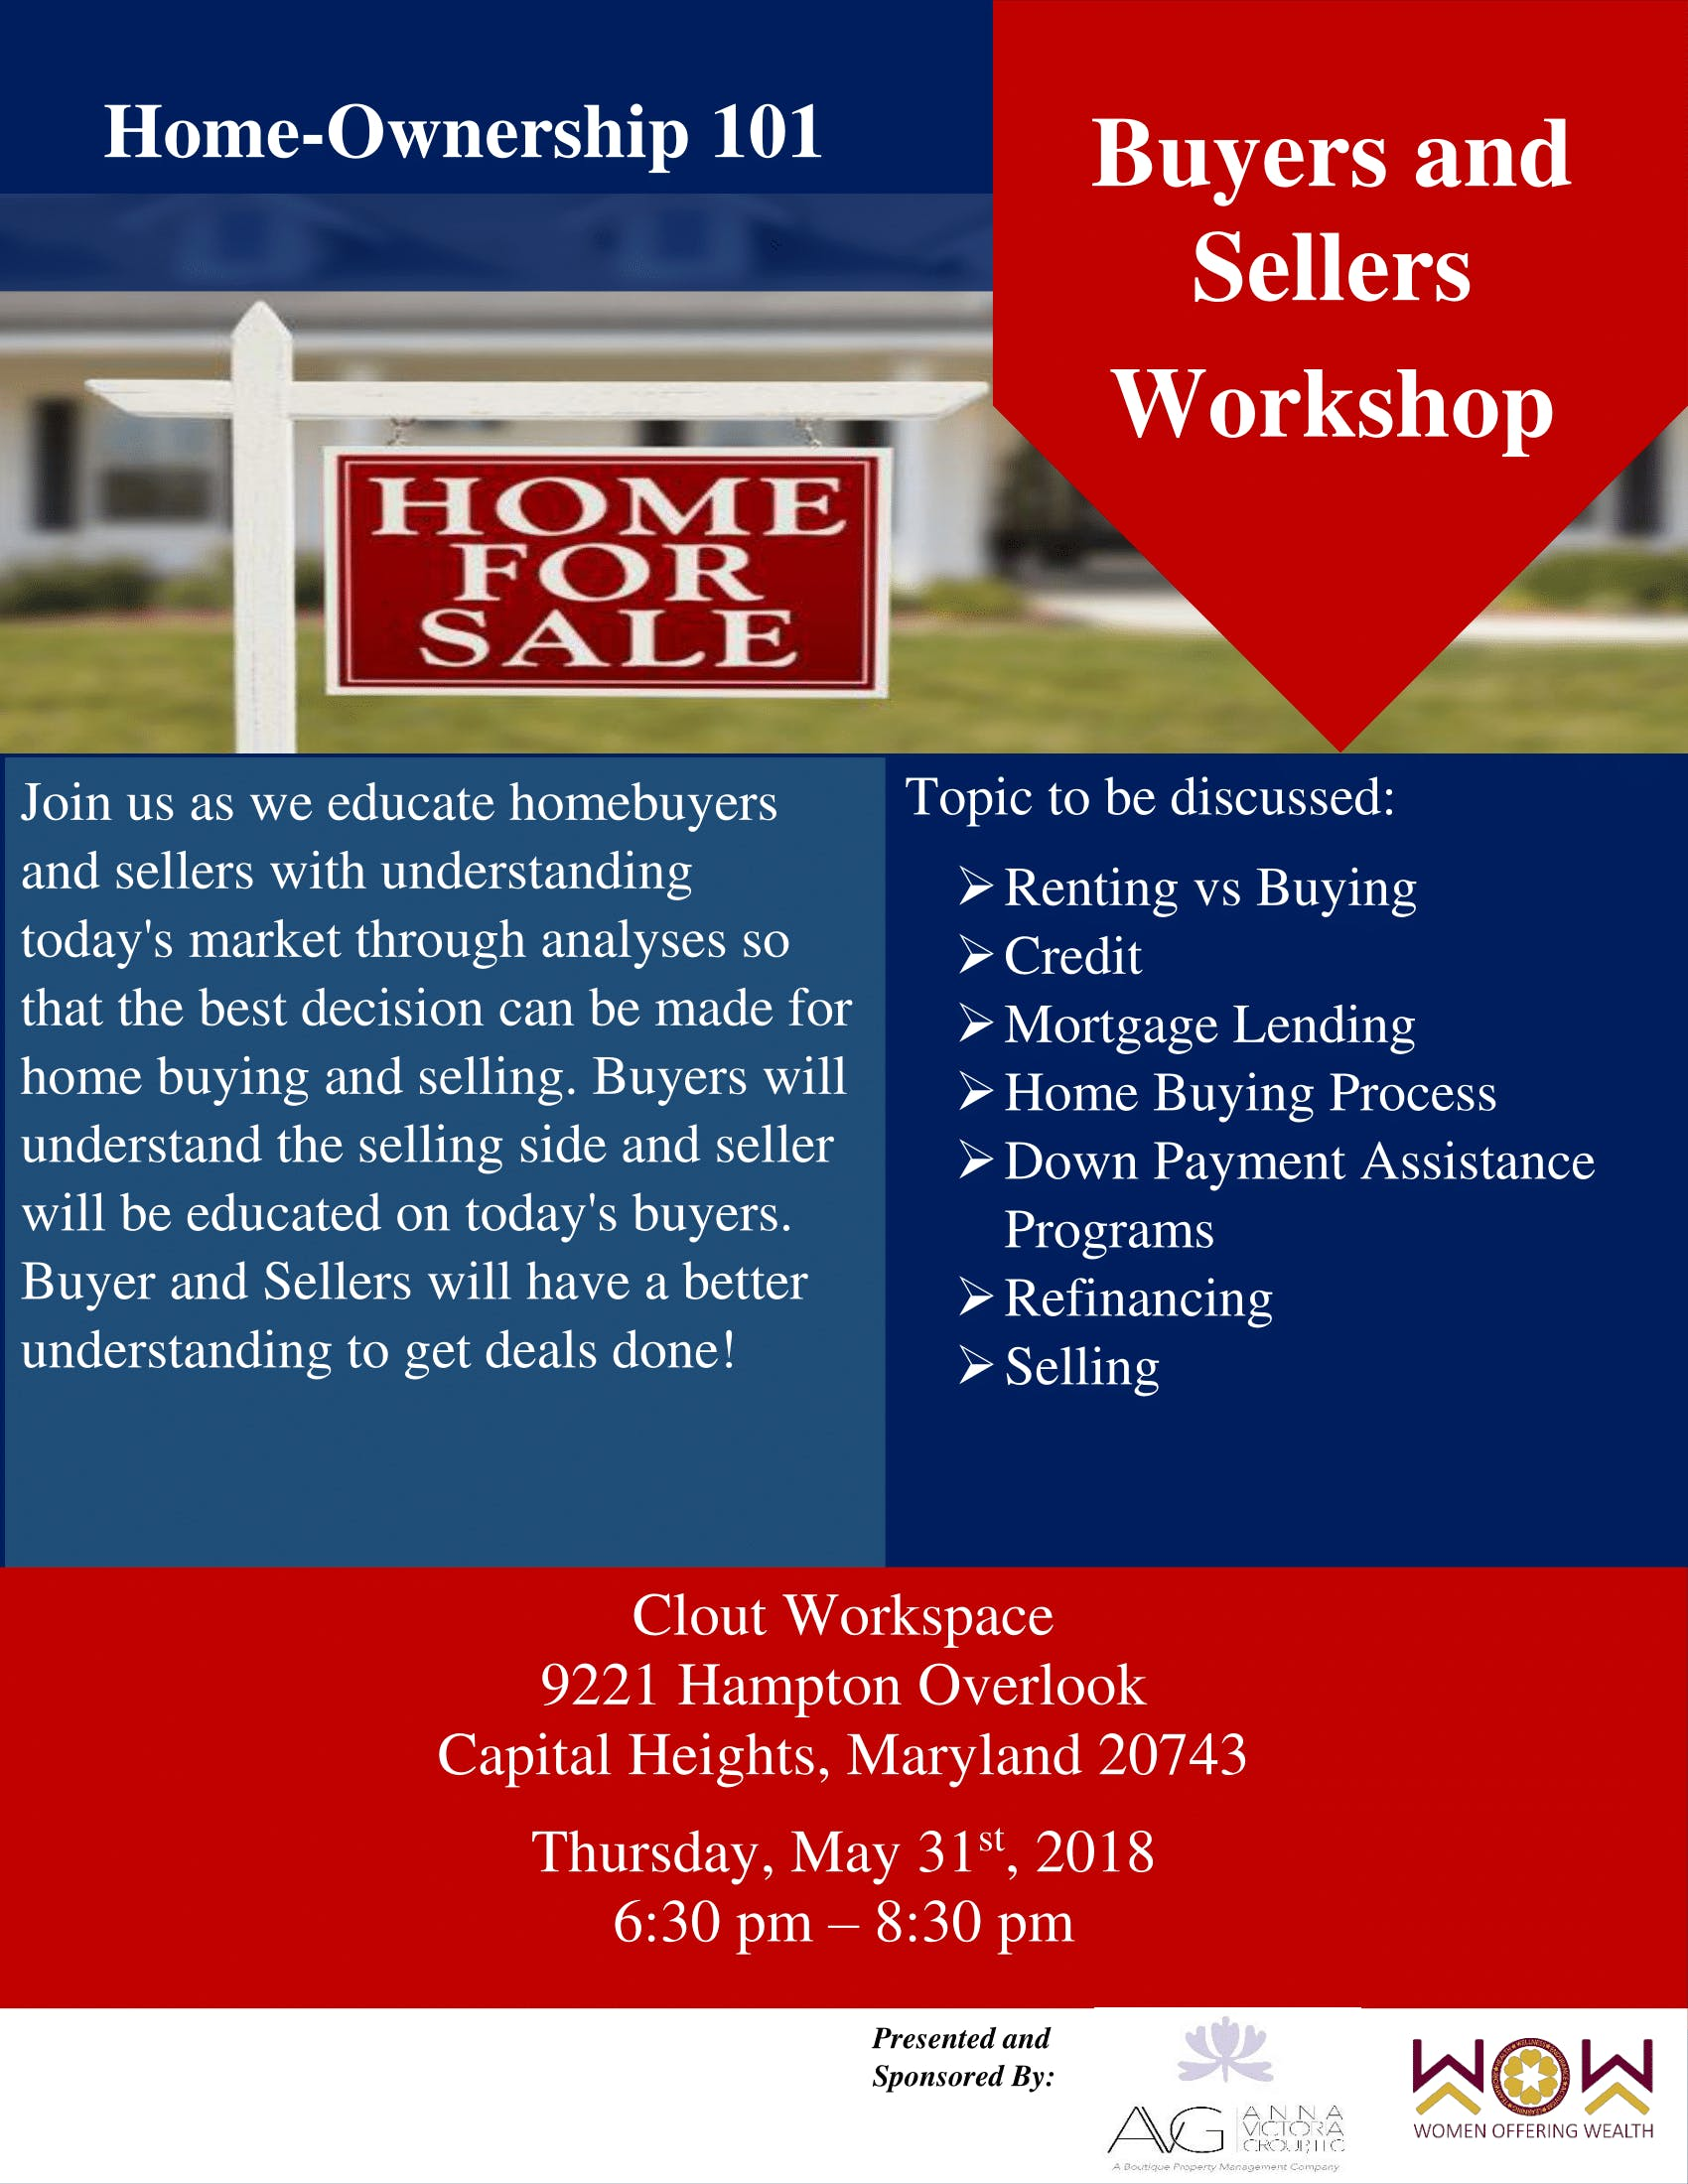 Home-Ownership 101 (Buyers Renters &amp Sellers Workshop)